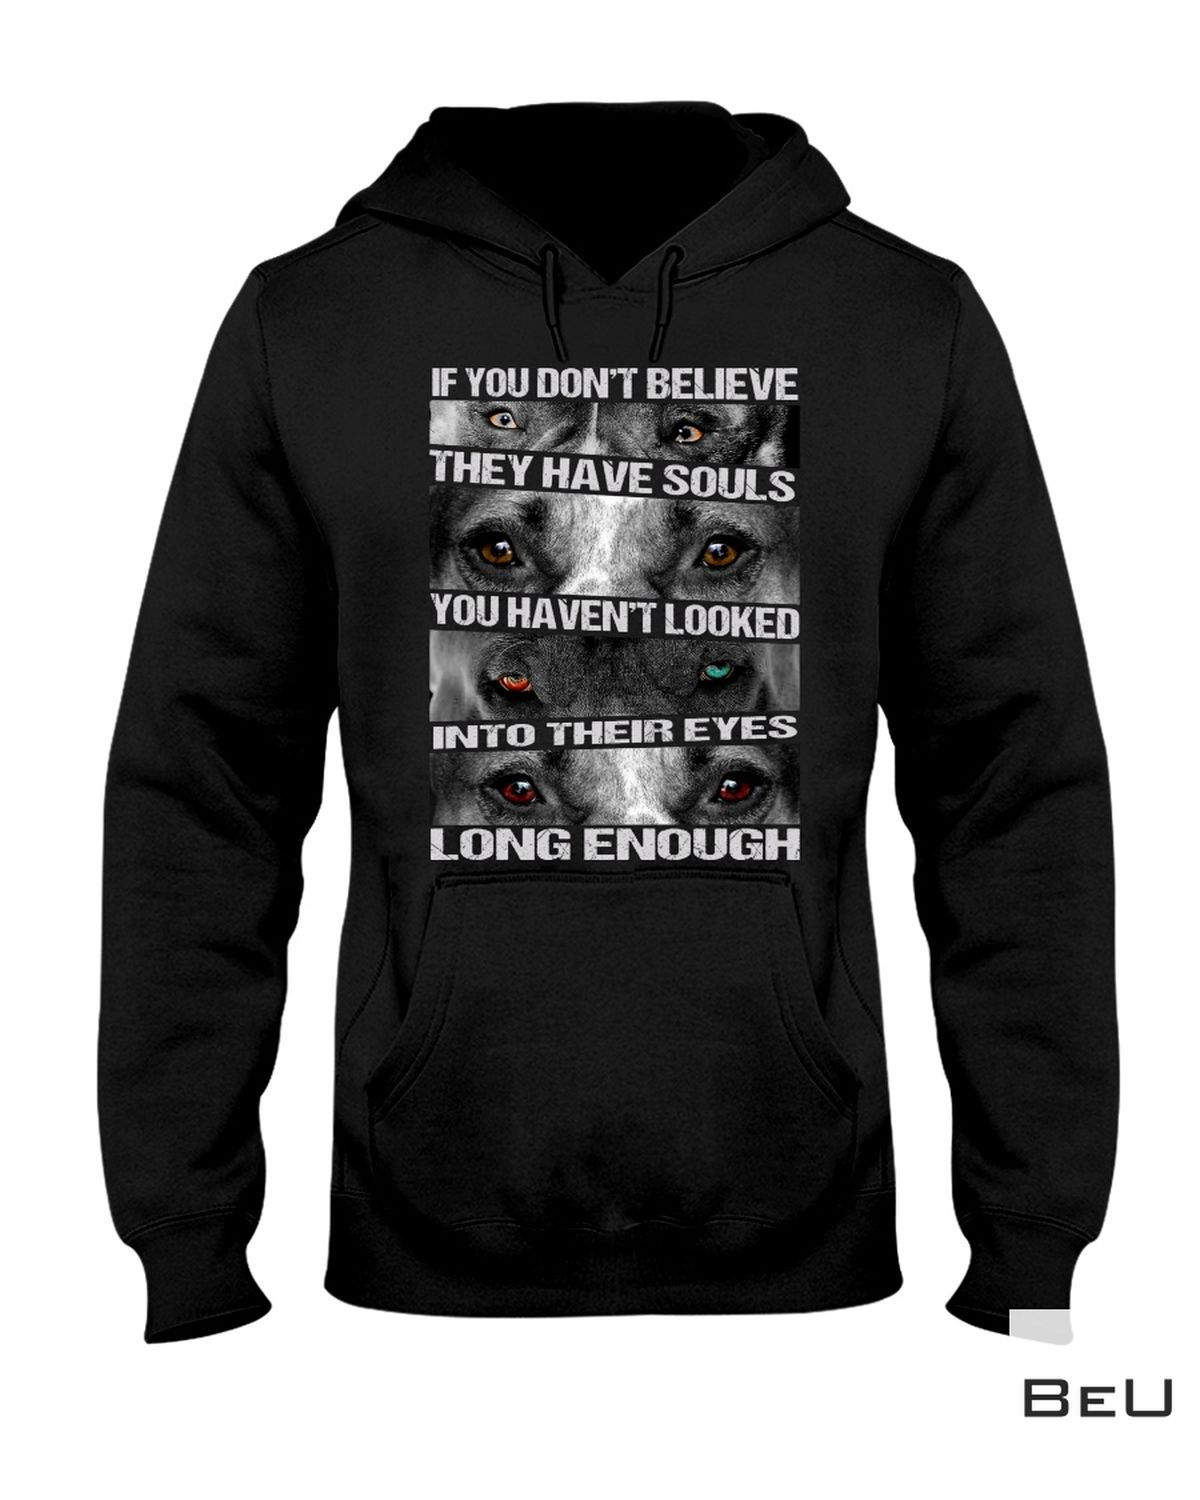 Free If You Don't Believe They Have Souls You Haven't Looked Into Their Eyes Long Enough Pit Bull Shirt, hoodie, tank top